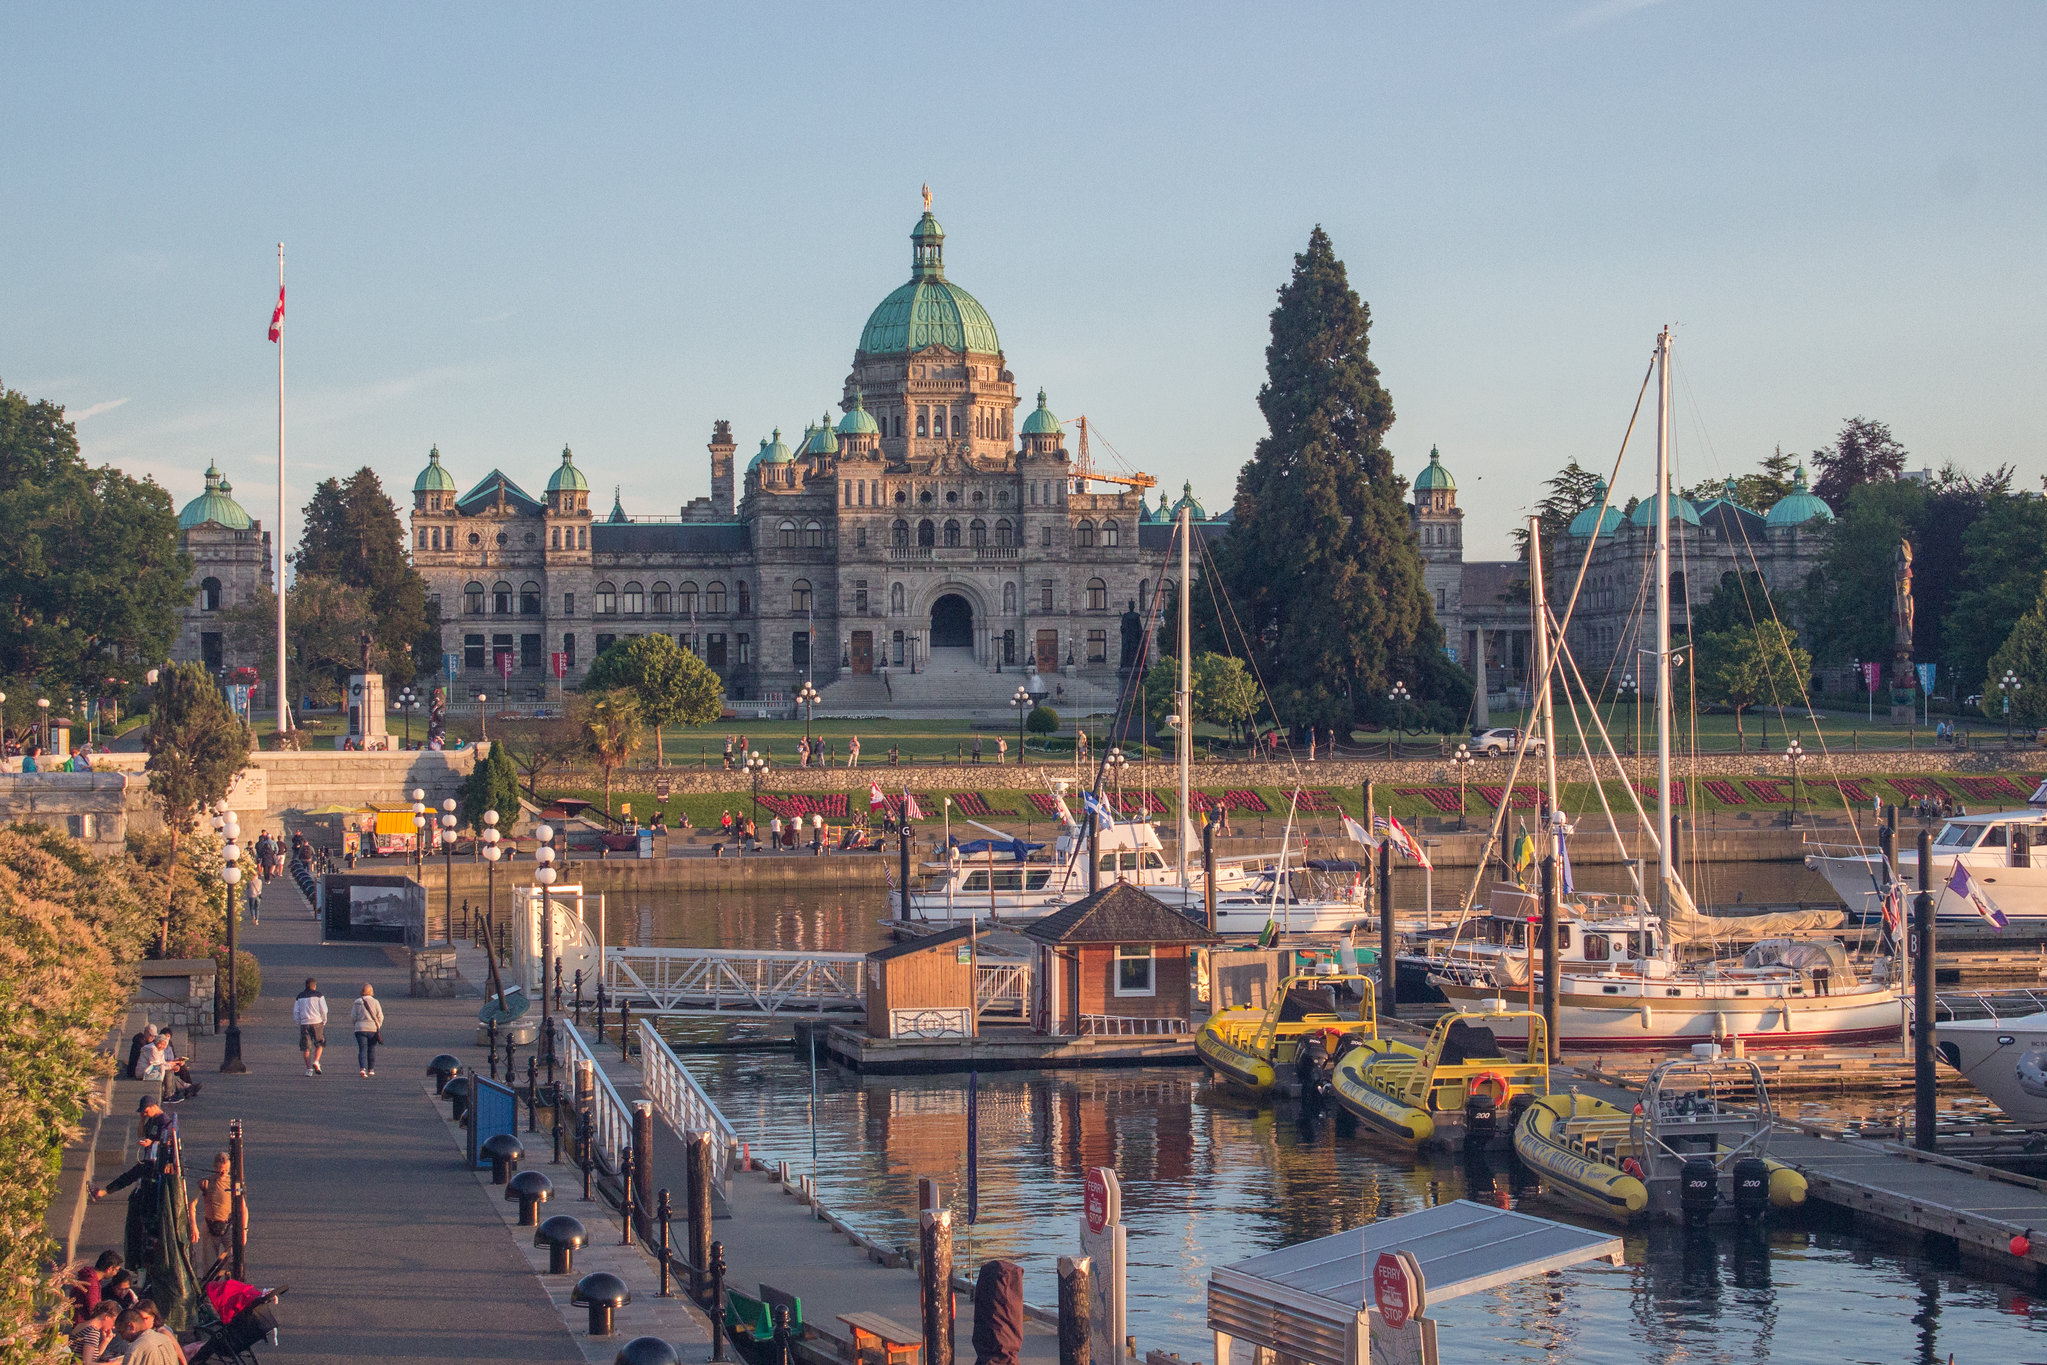 Sunset over BC parliament building - how spend one day exploring Victoria, BC